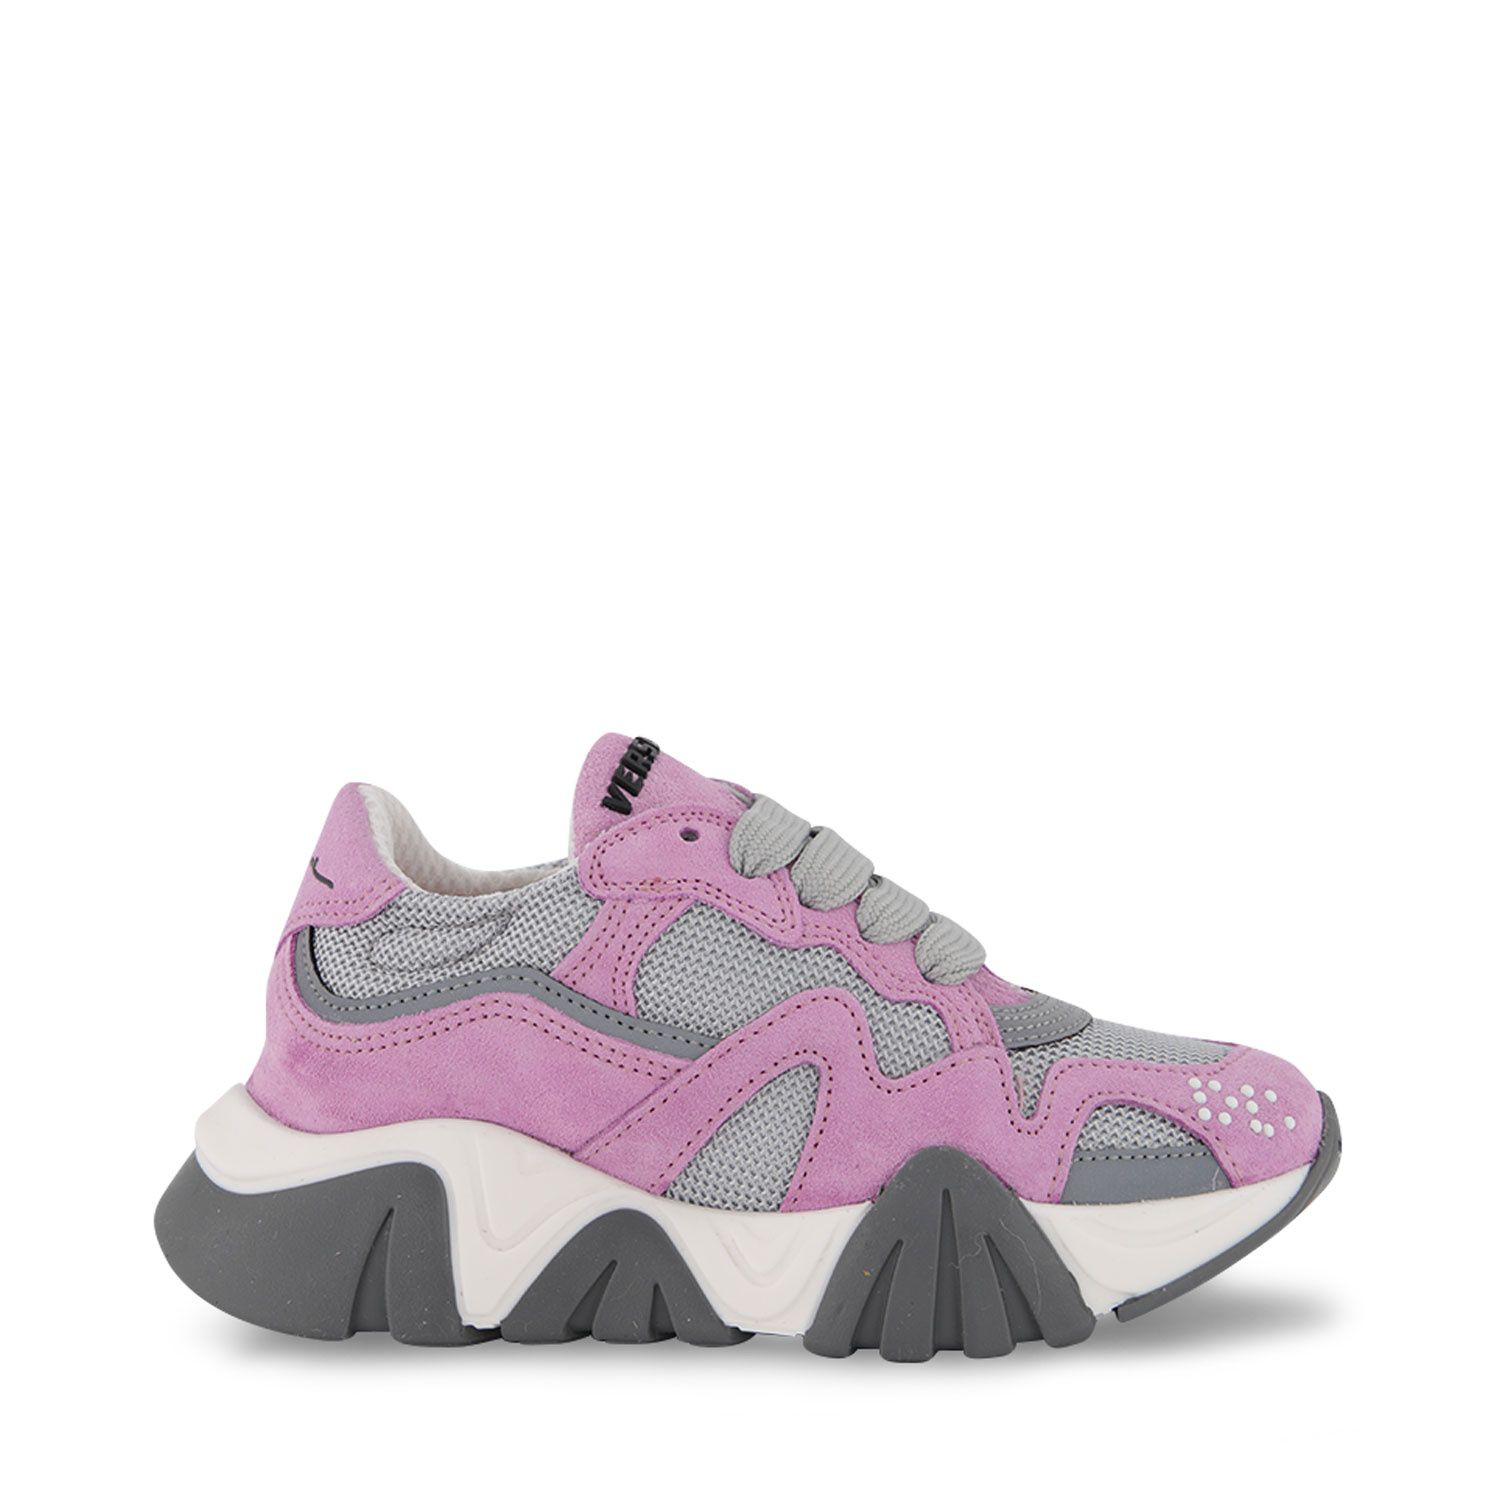 Picture of Versace 1A00461 kids sneakers pink